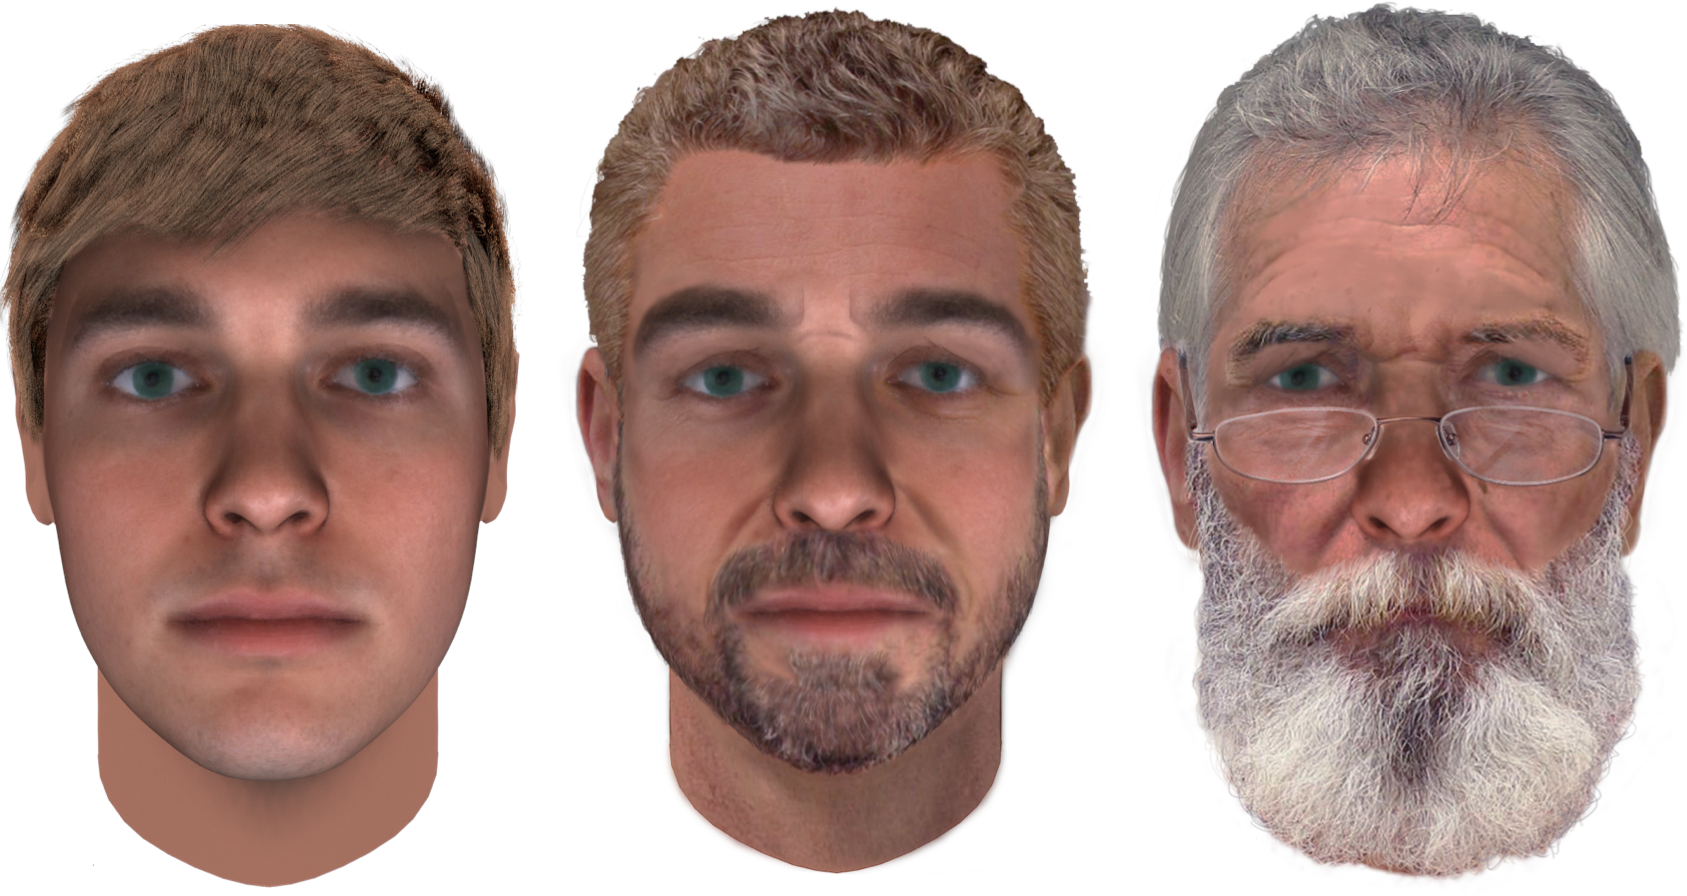 Paternity through facial structure